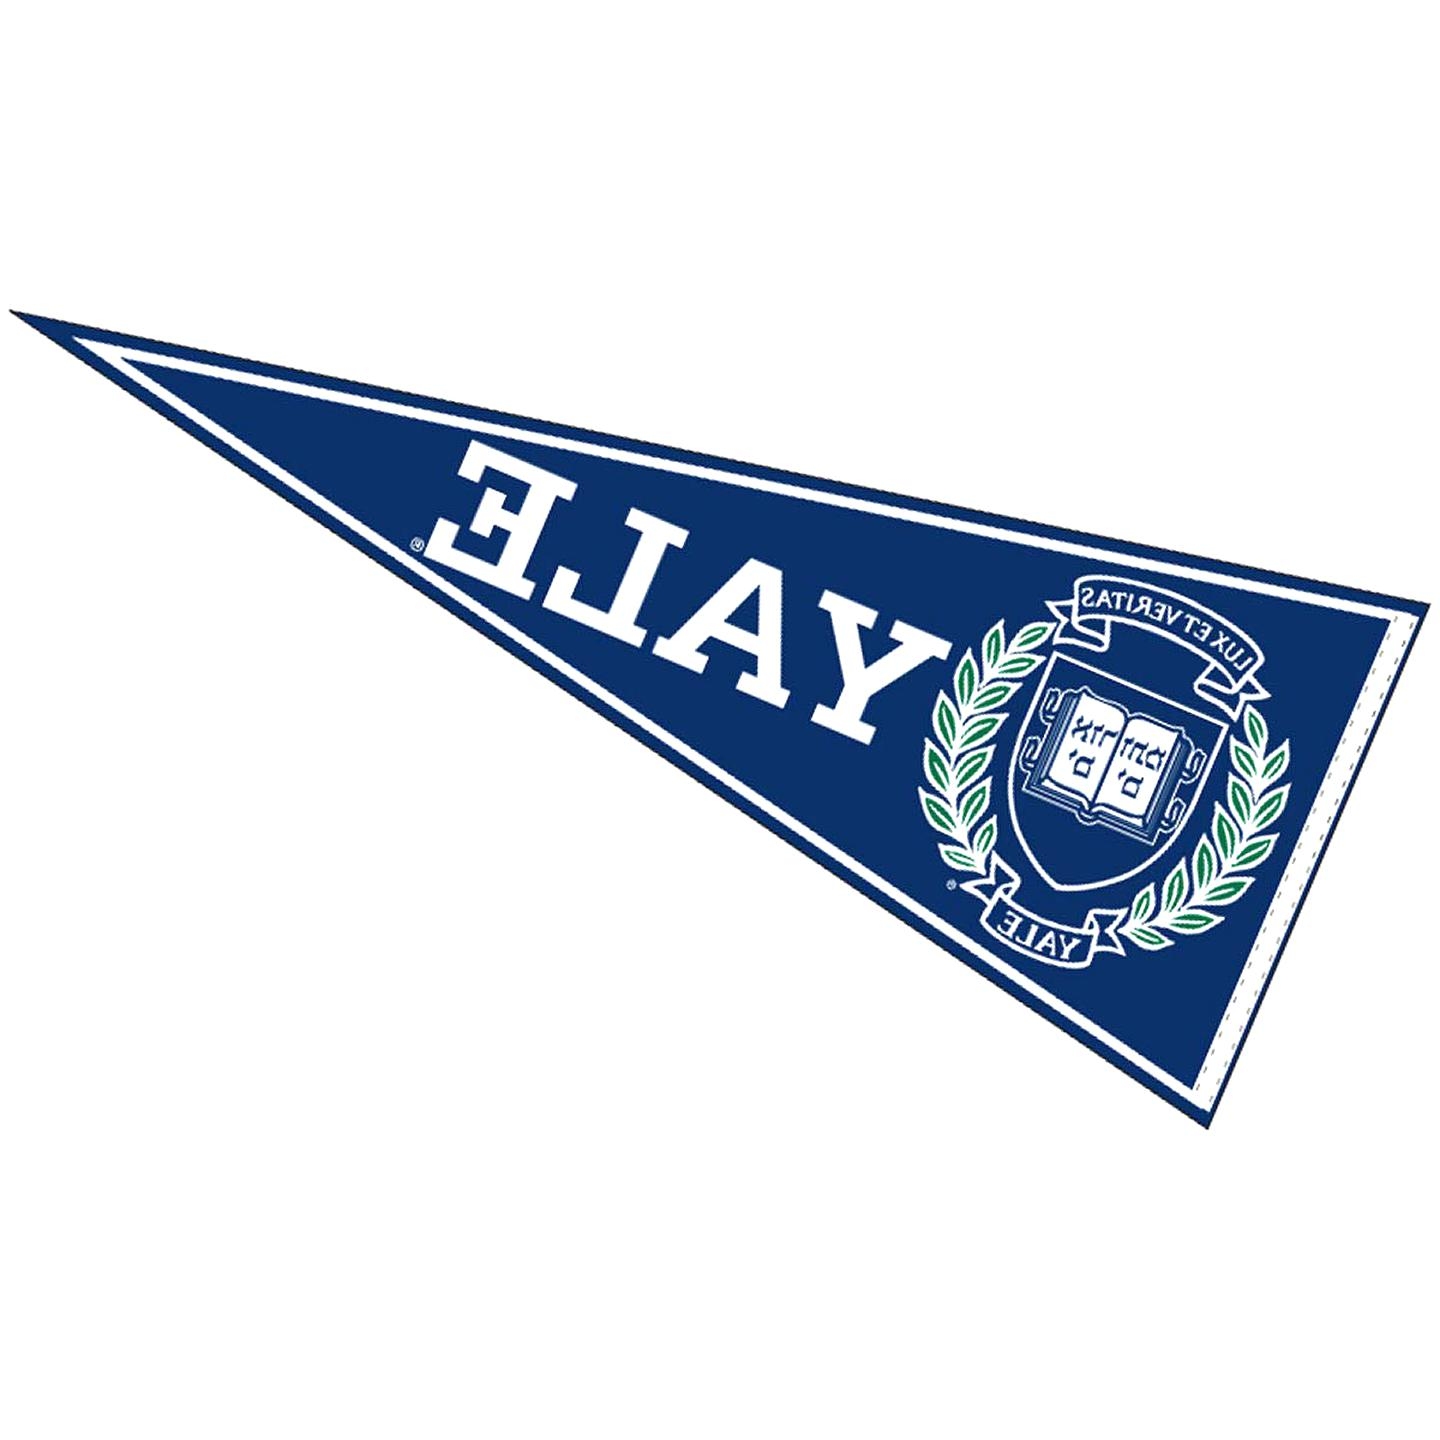 yale pennant for sale